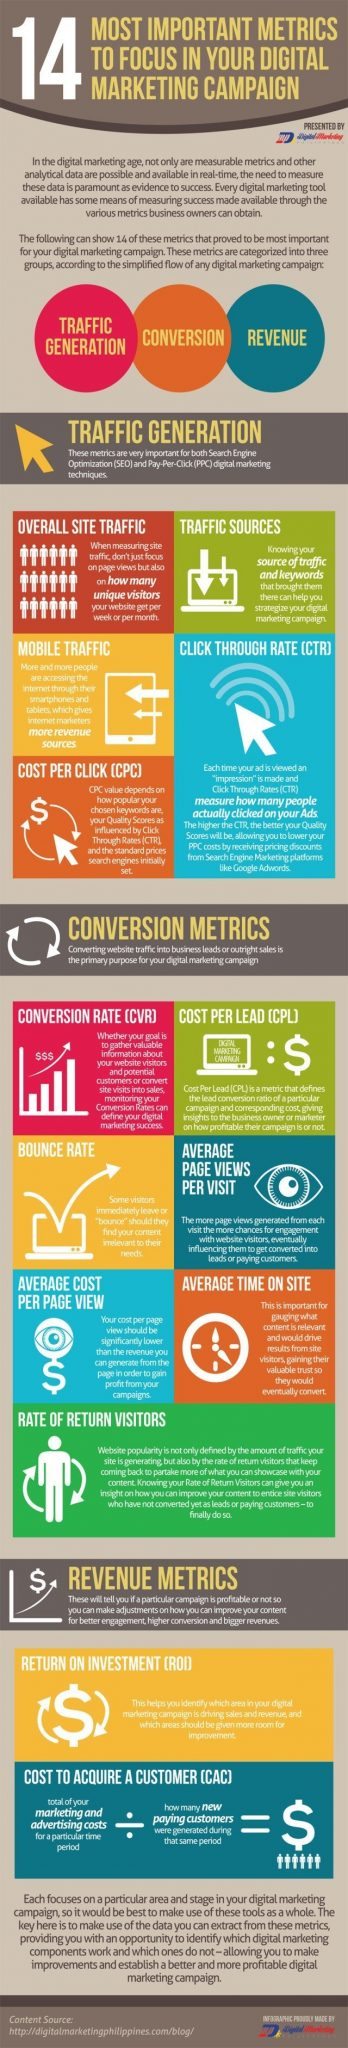 14-Most-Important-Metrics-to-Focus-in-Your-Digital-Marketing-Campaign-640x3764